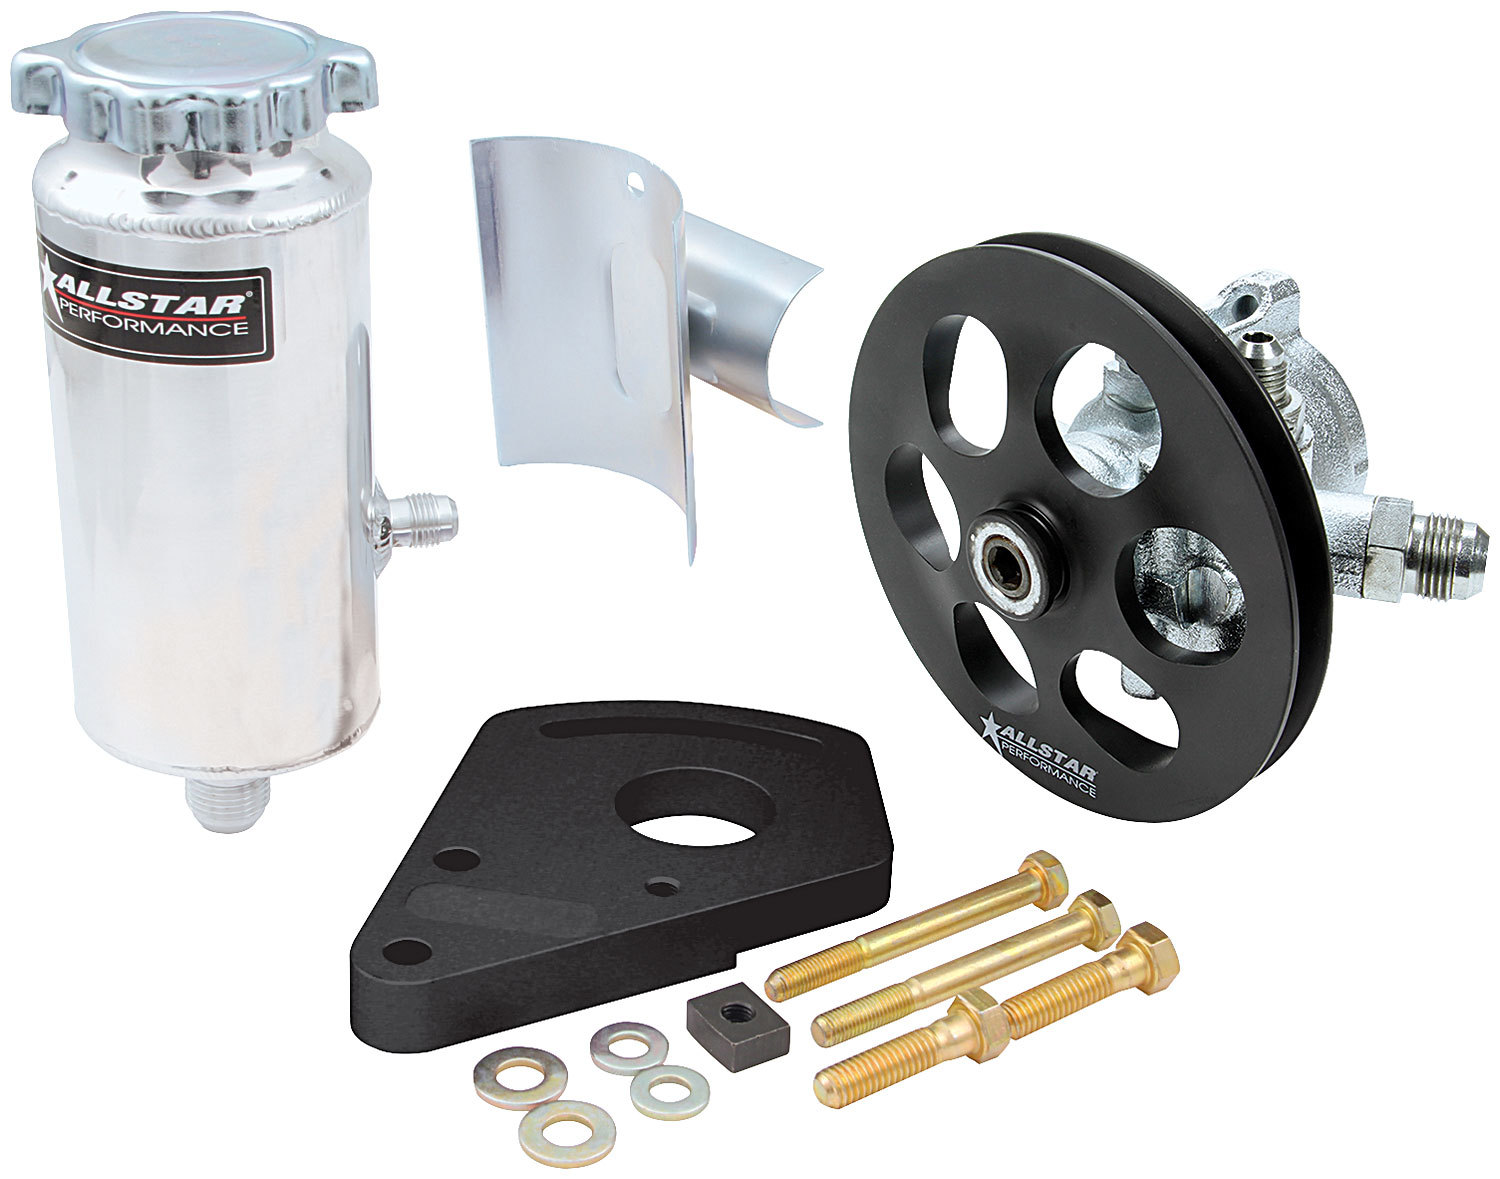 Allstar Performance 48242 Power Steering Pump, GM Type 2, 3 gpm, 1300 psi, Block Mount / Tank / V-Belt Pulley Included, Small Block Chevy, Kit